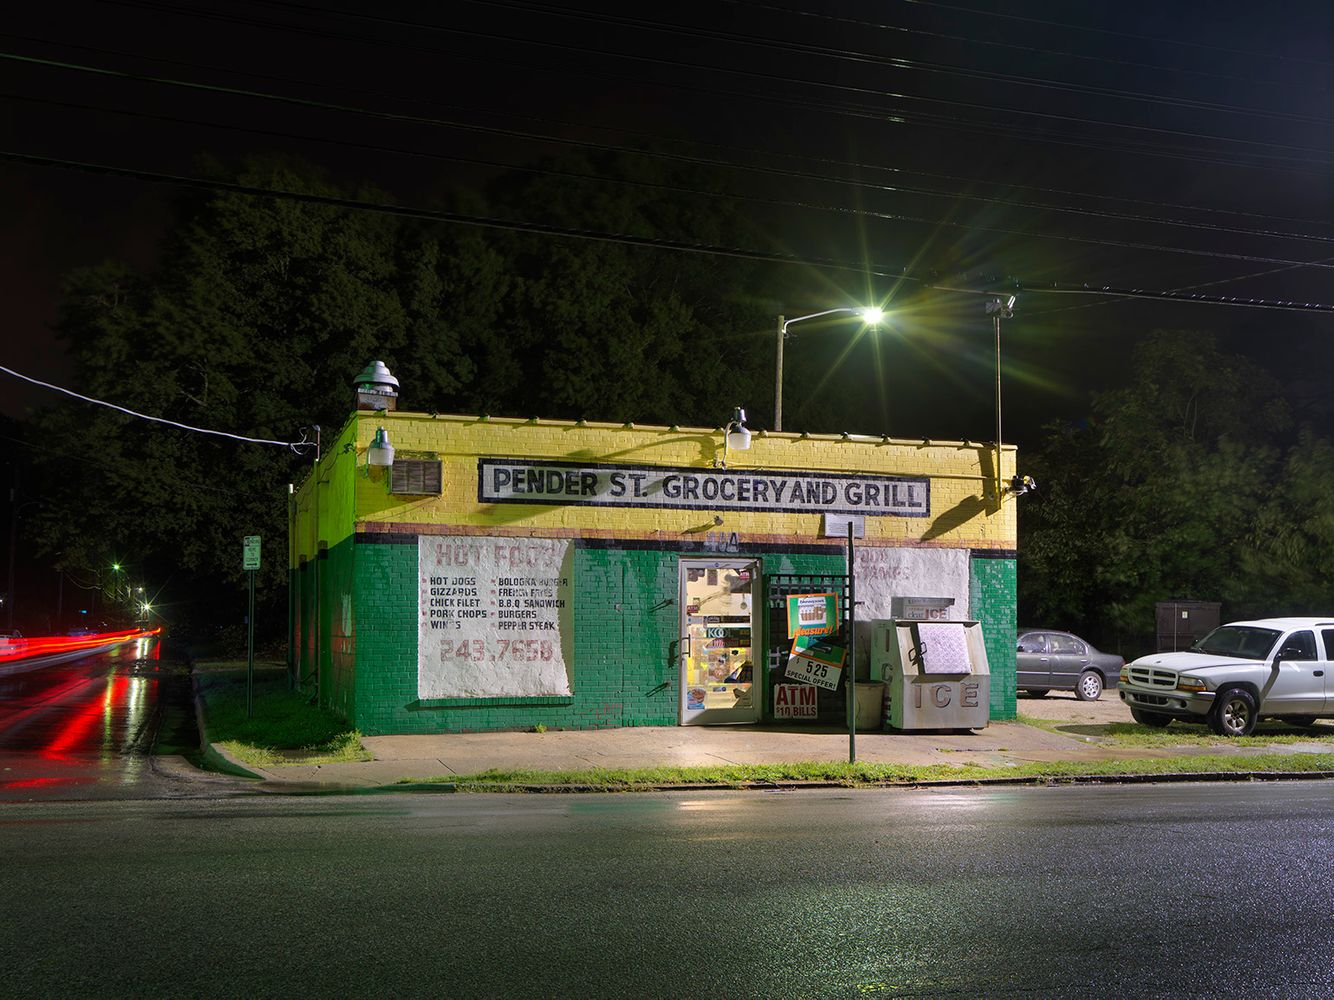 Pender St. Grocery & Grill, Wilson, NC 2018